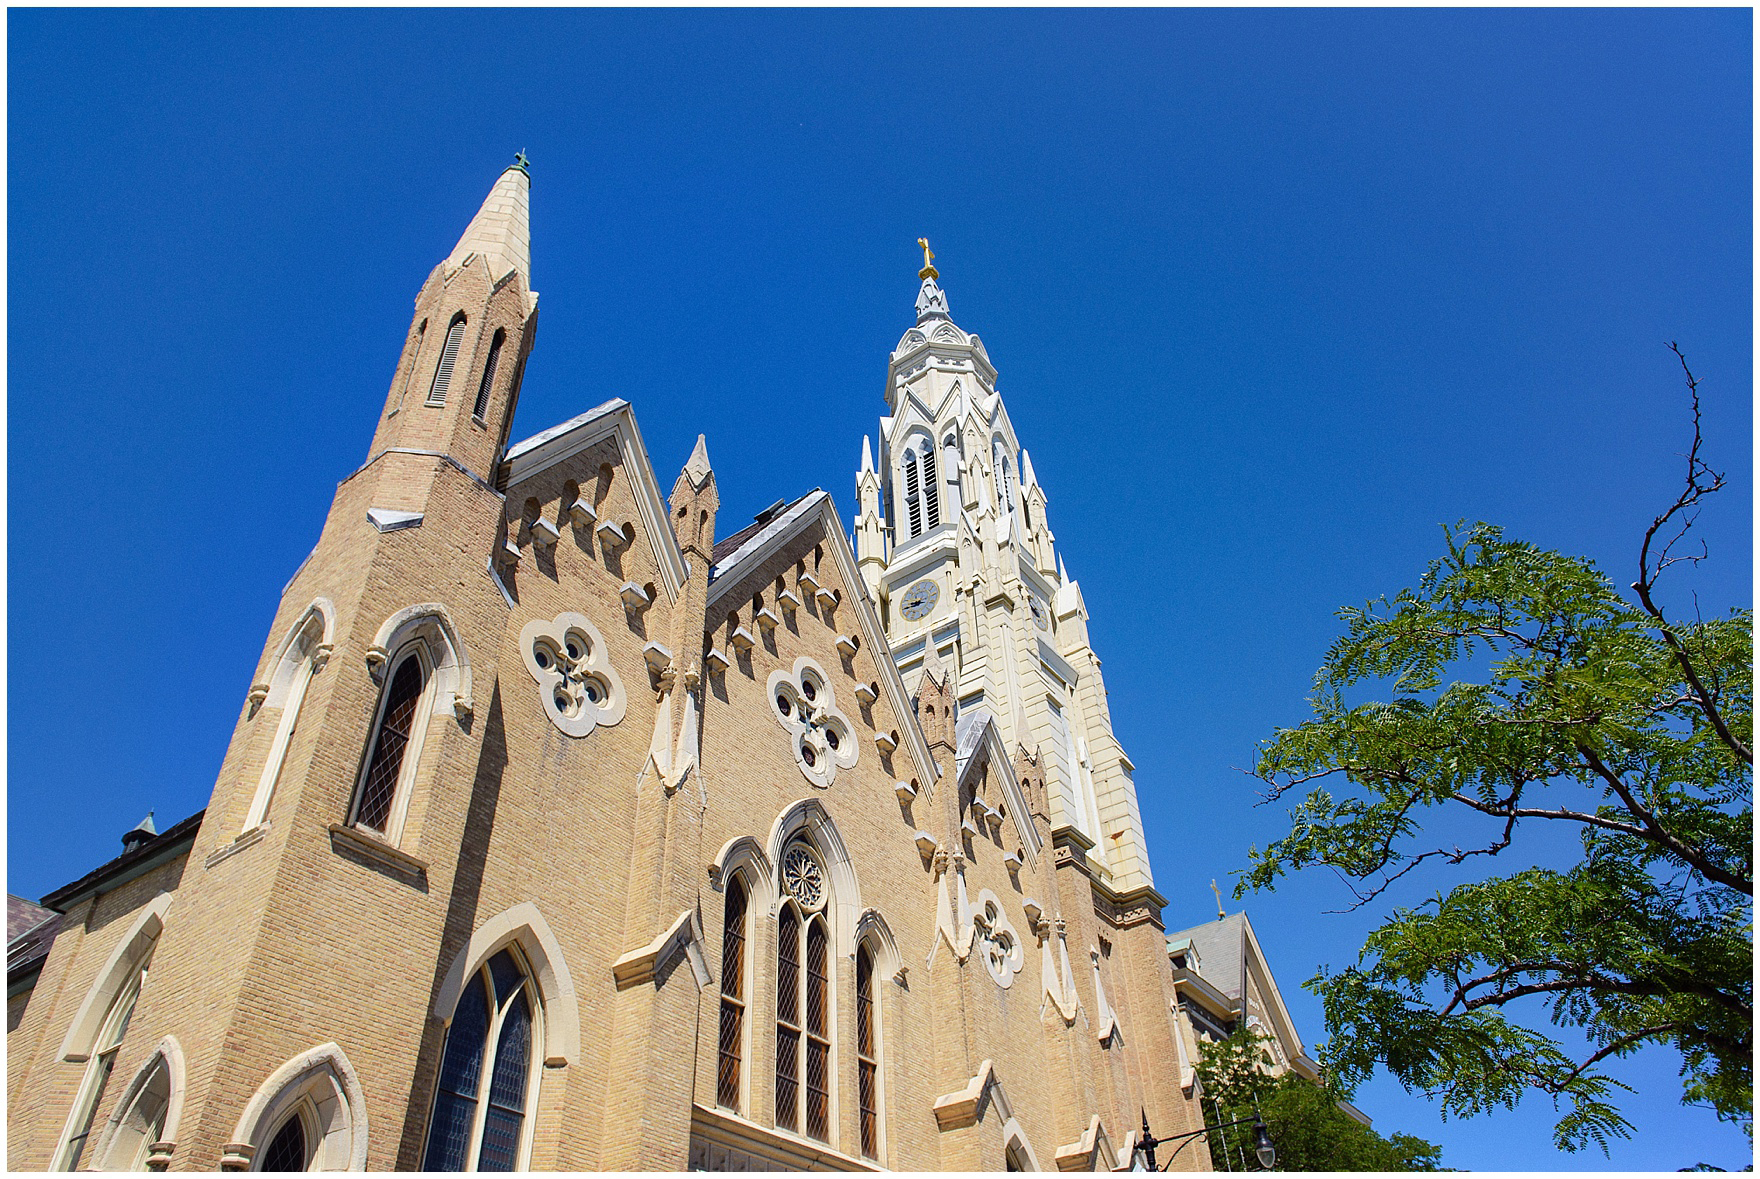 The exterior of Chicago's historic Holy Family Church, site of the ceremony for a Butterfield Country Club wedding.